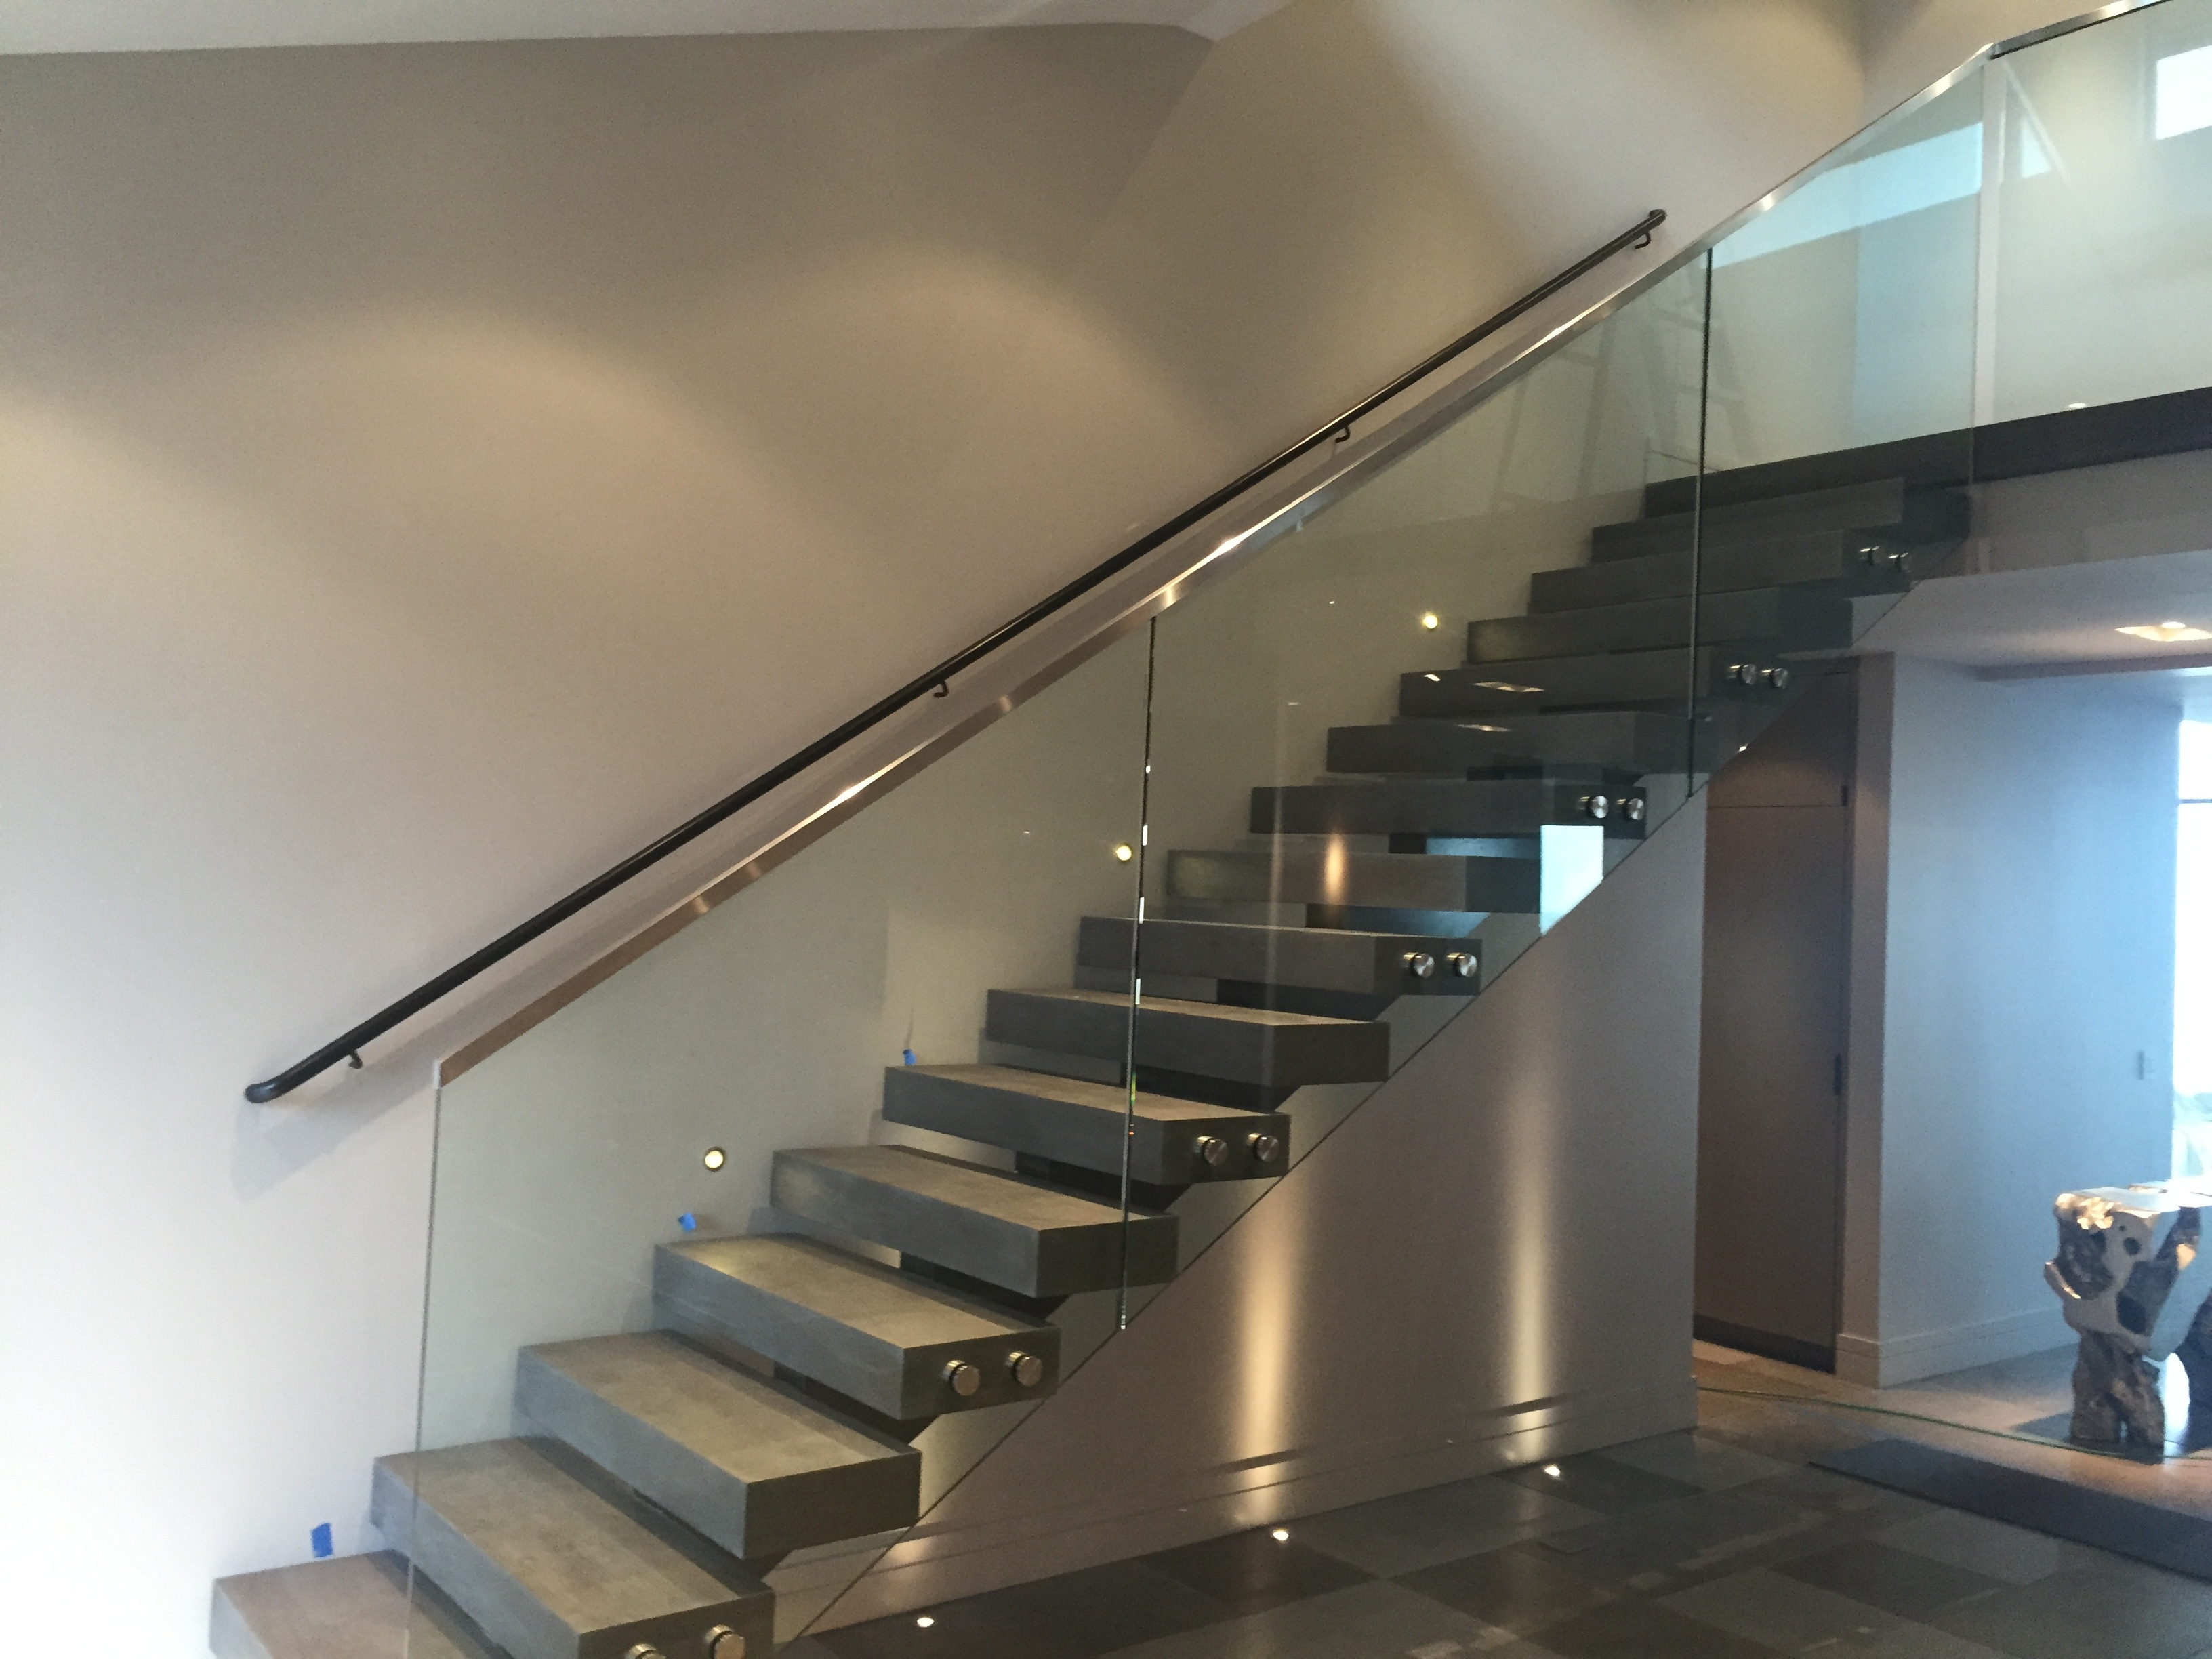 Glass Stair Rail With Standoffs • Ot Glass   Wood And Glass Staircase Railing   Tempered Glass   Glass Style Kerala   Rustic Glass Interior   Architectural Modern Wood Stair   Interior